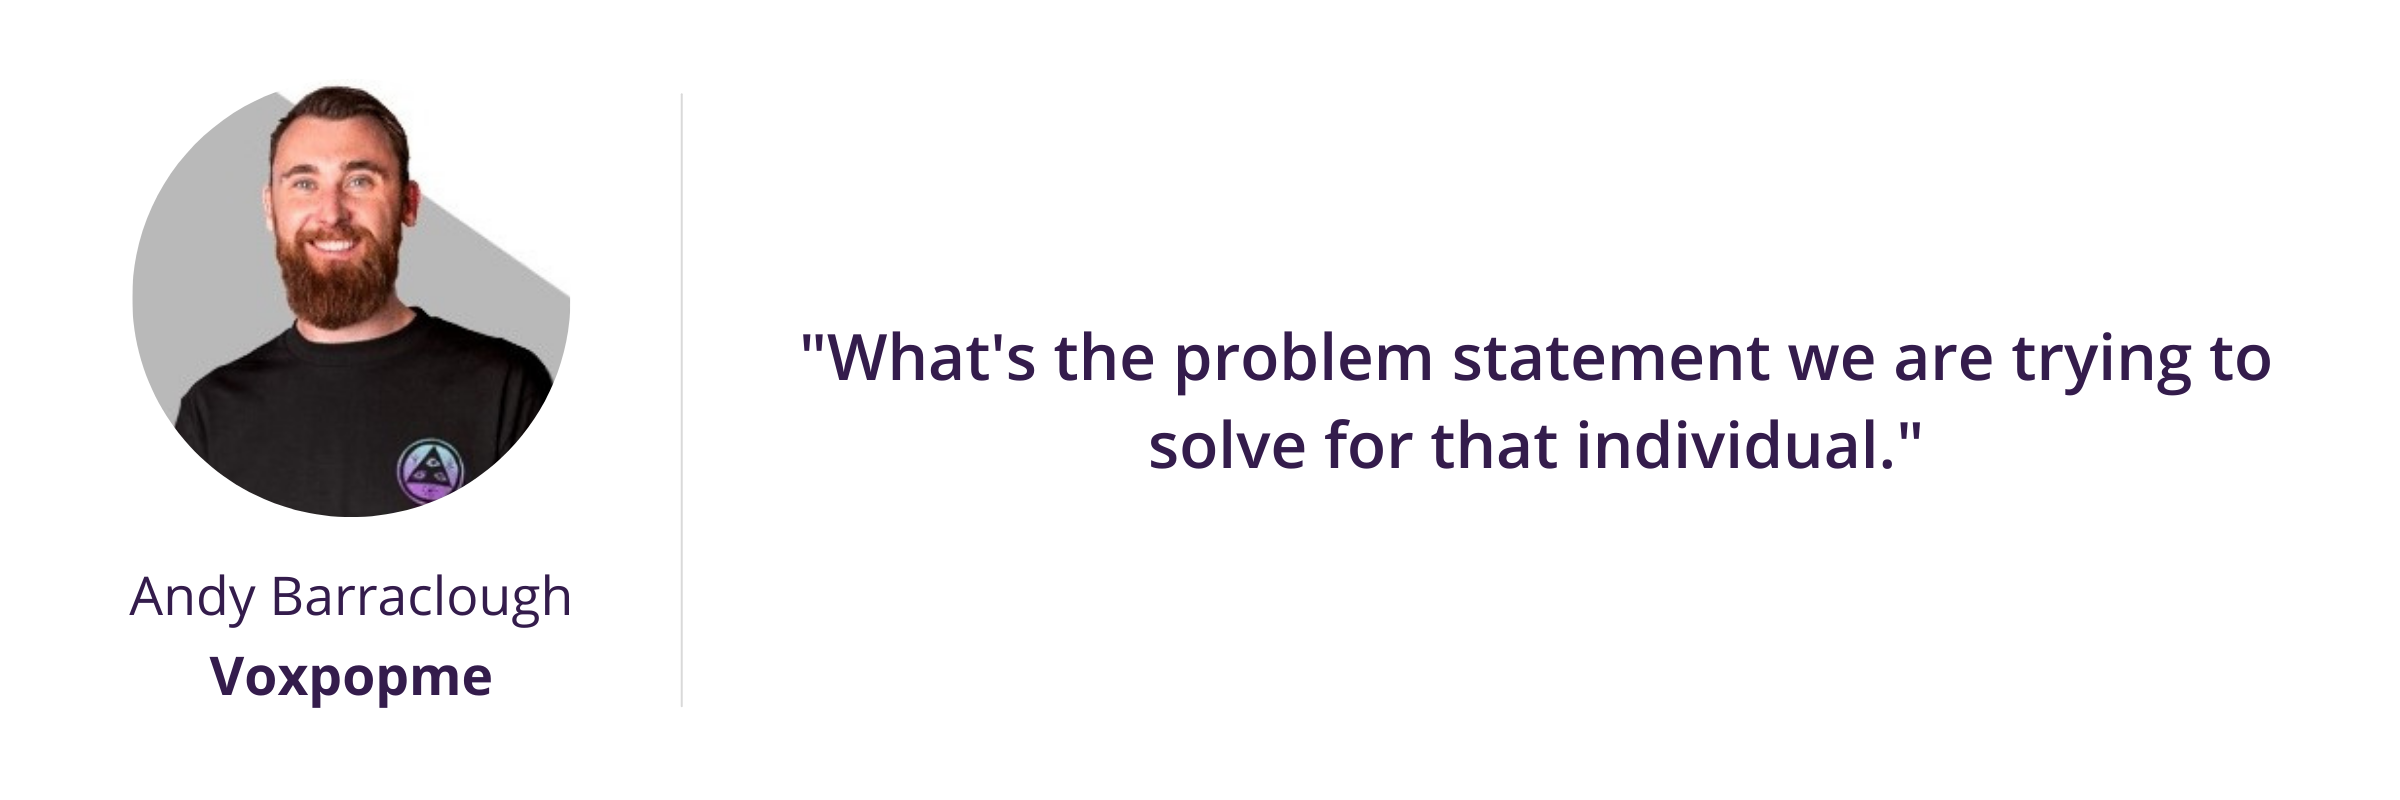 What's the problem statement we are trying to solve for that individual